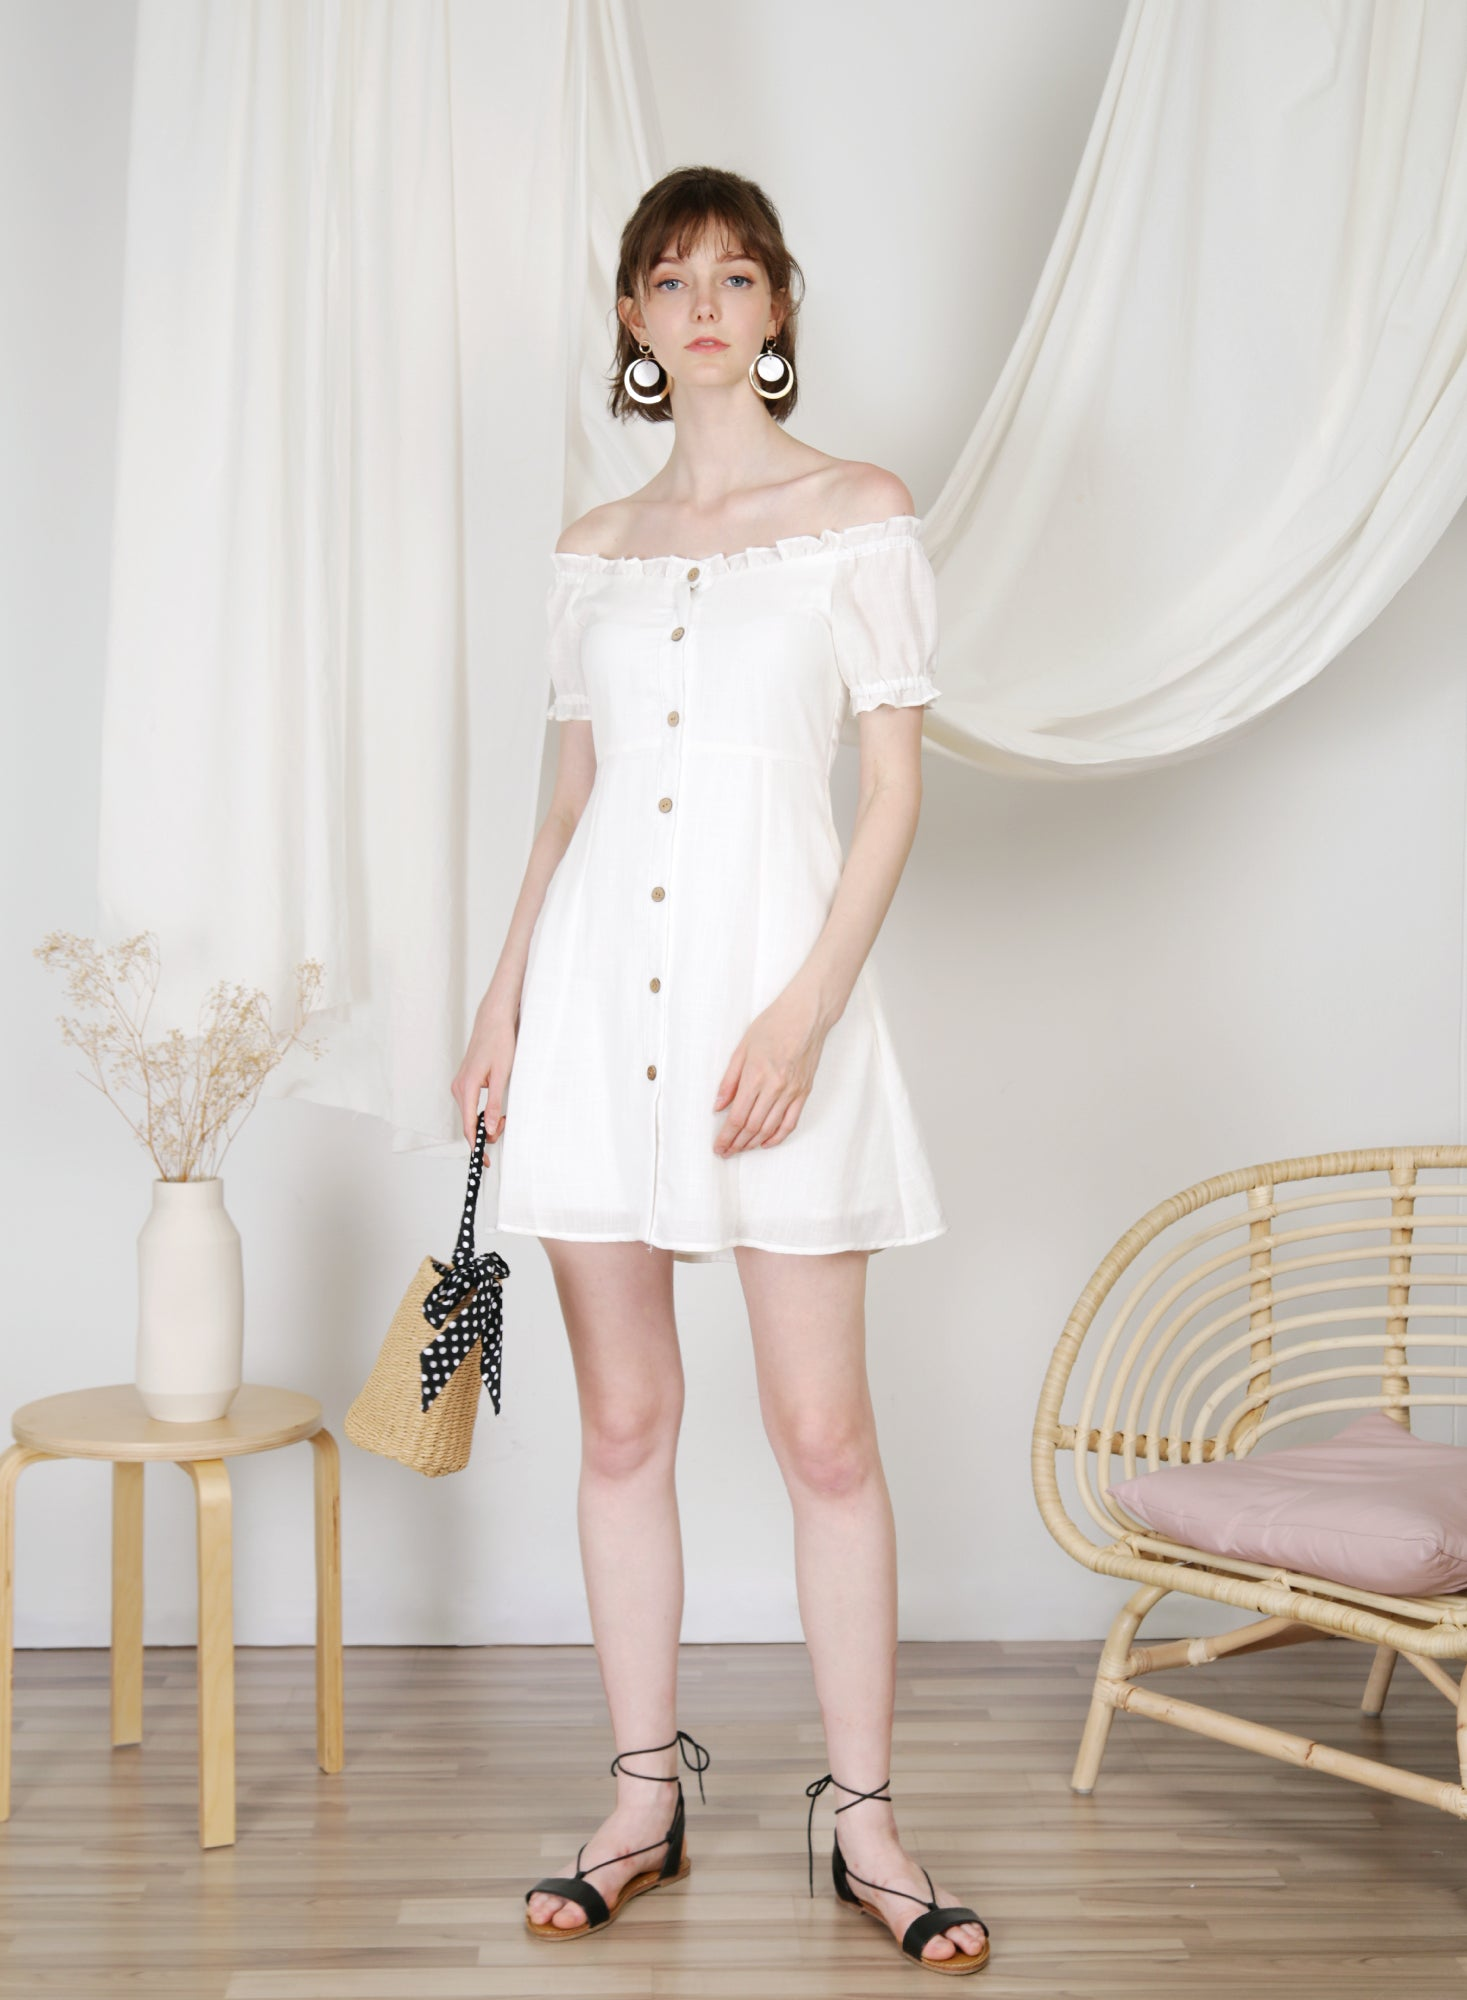 Jovial Off Shoulder Button Down Dress (White) at $ 45.00 only sold at And Well Dressed Online Fashion Store Singapore